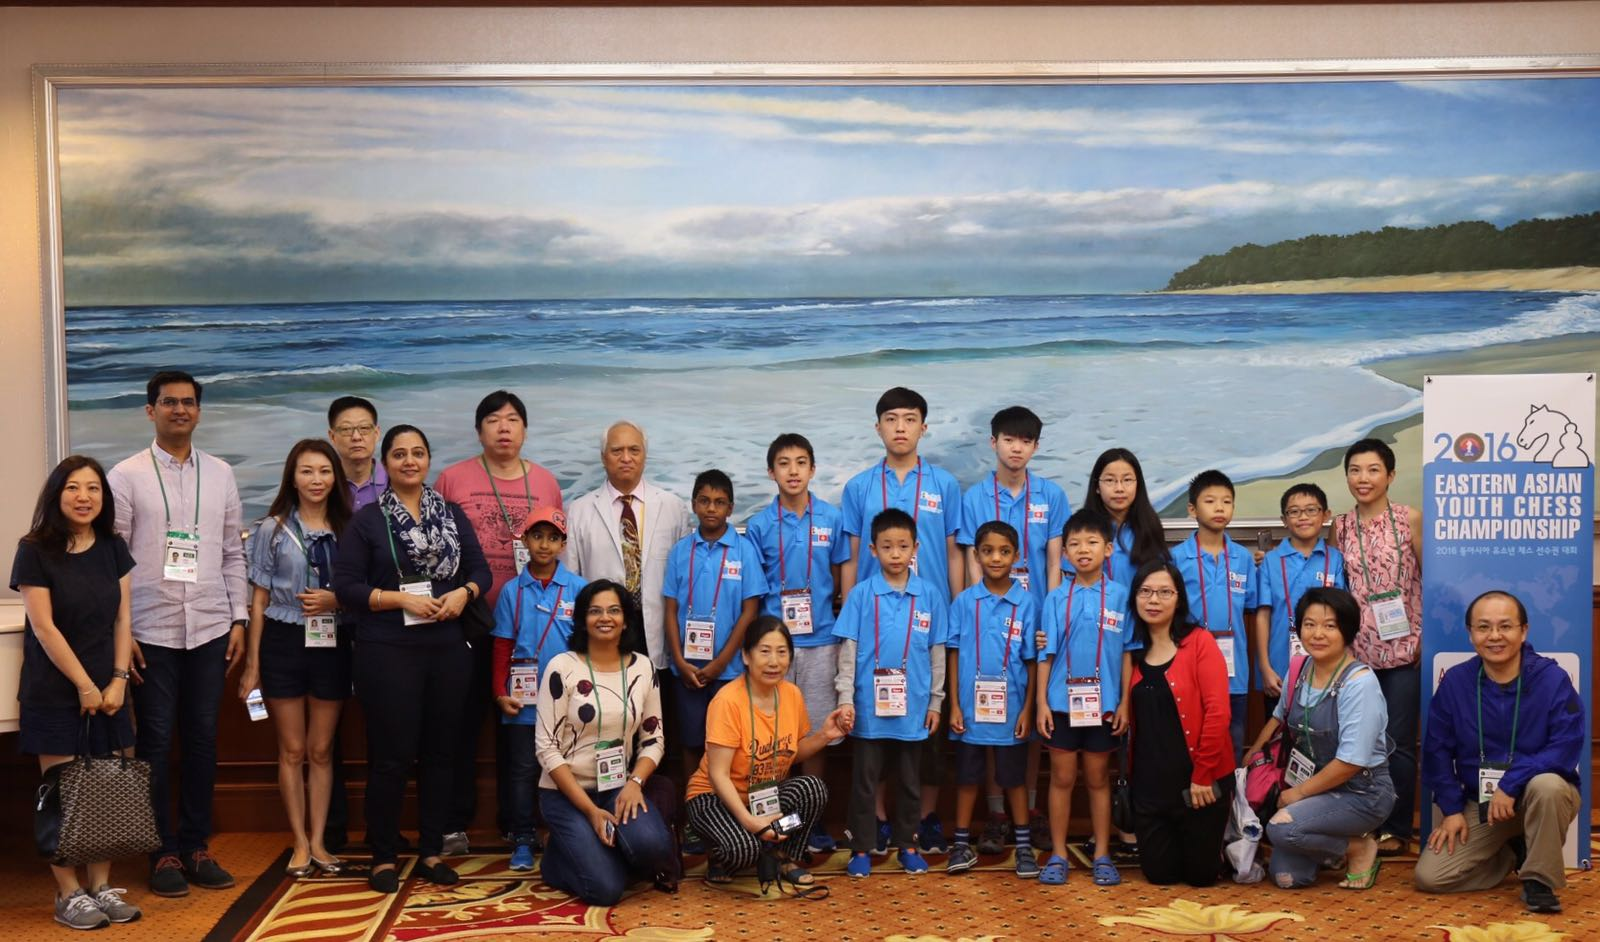 Hong Kong won 2nd place in U8 and G12 in the East Asian Chess Championships 2016